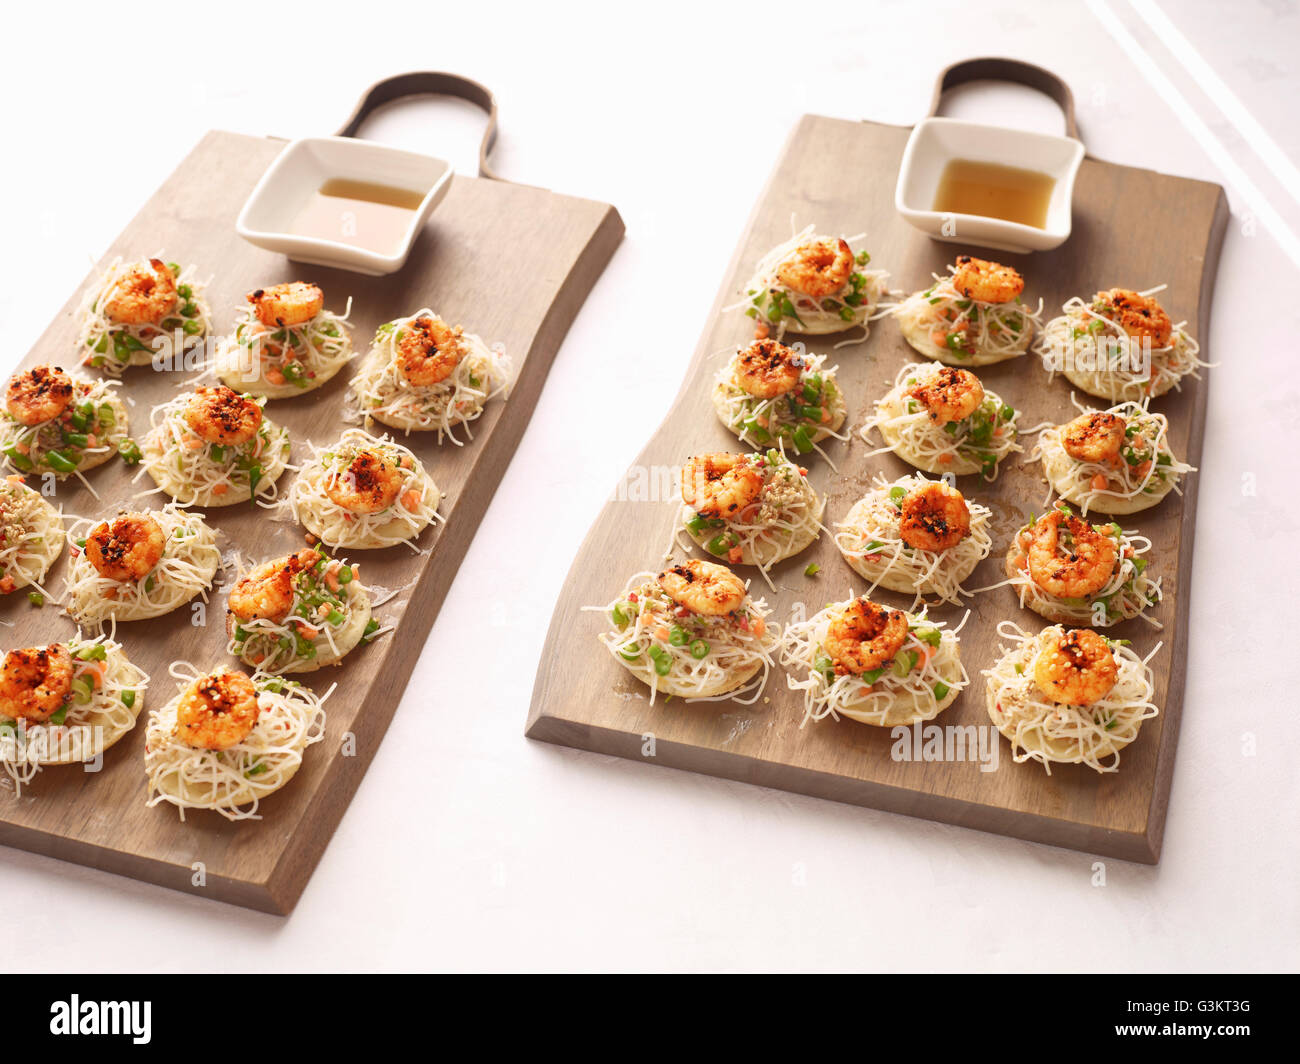 Sesame noodles and chilli prawn canapes with dipping sauce - Stock Image